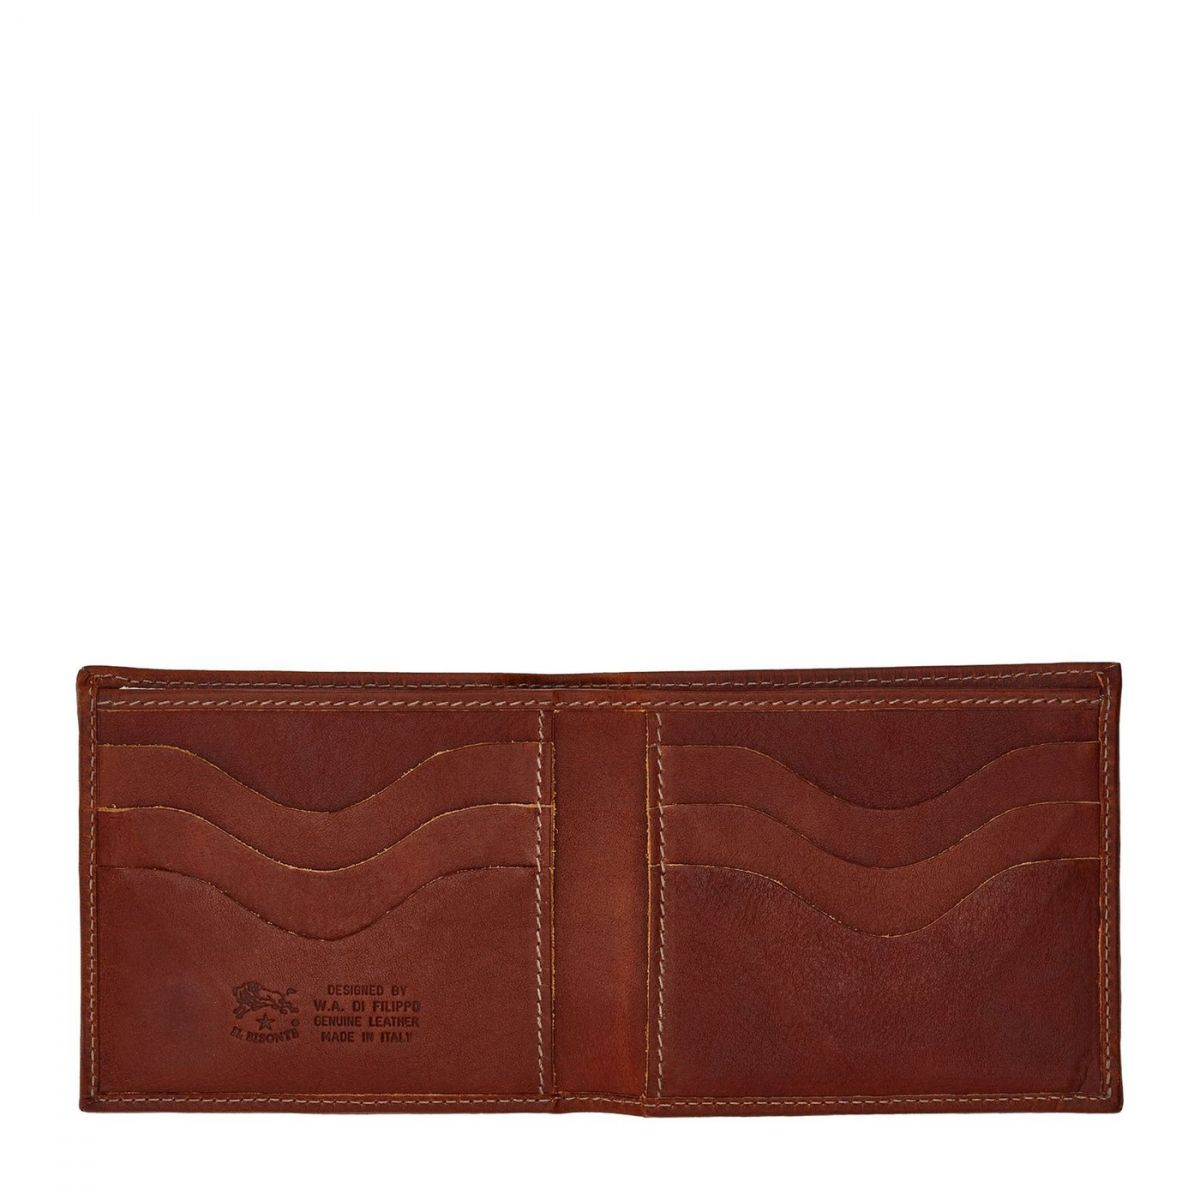 Men's Bi-Fold Wallet in Vintage Cowhide Leather SBW005 color Dark Brown Seppia | Details